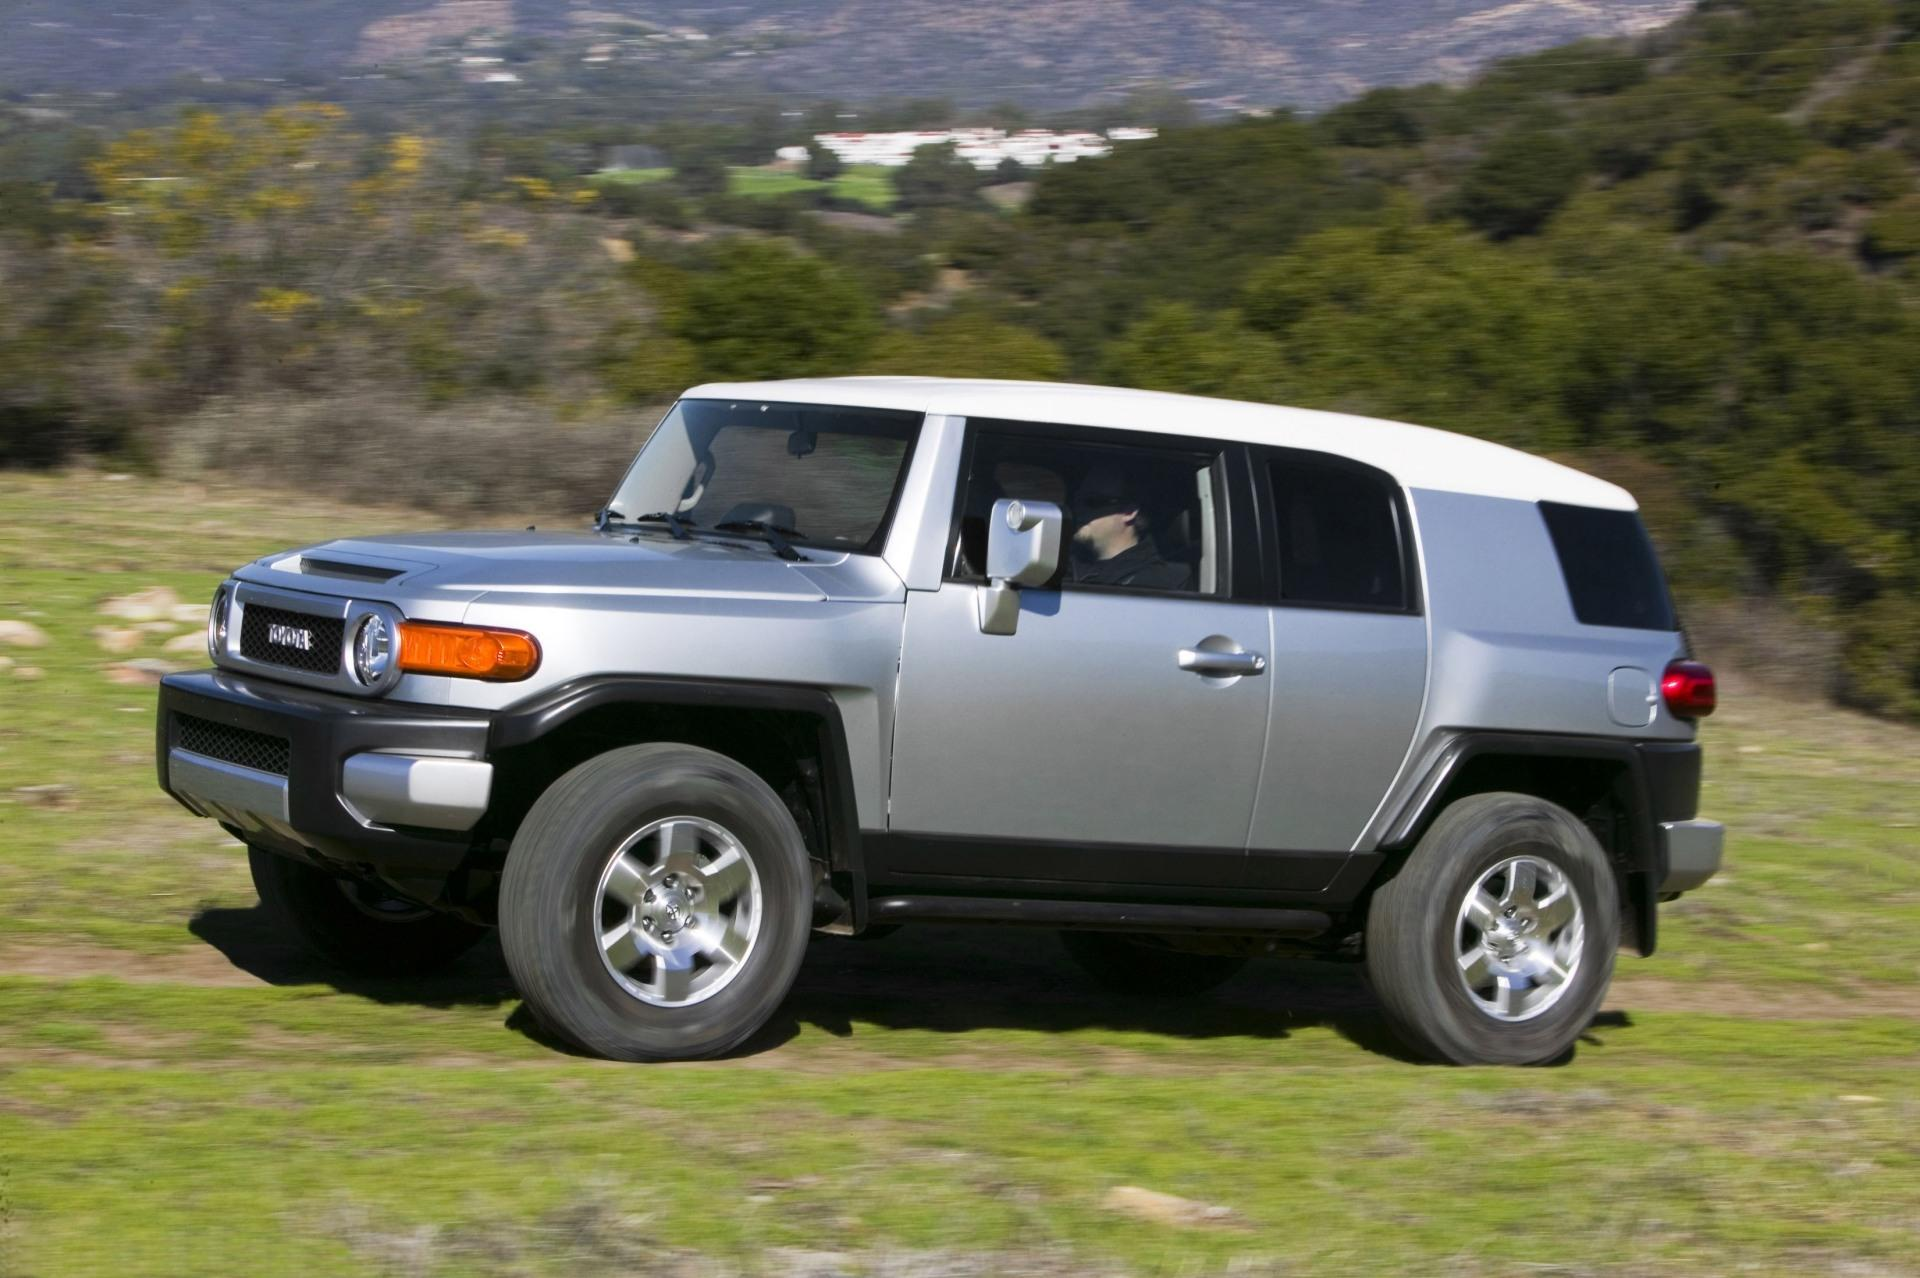 Toyota Fg Cruiser >> 2010 Toyota FJ Cruiser Image. Photo 31 of 48